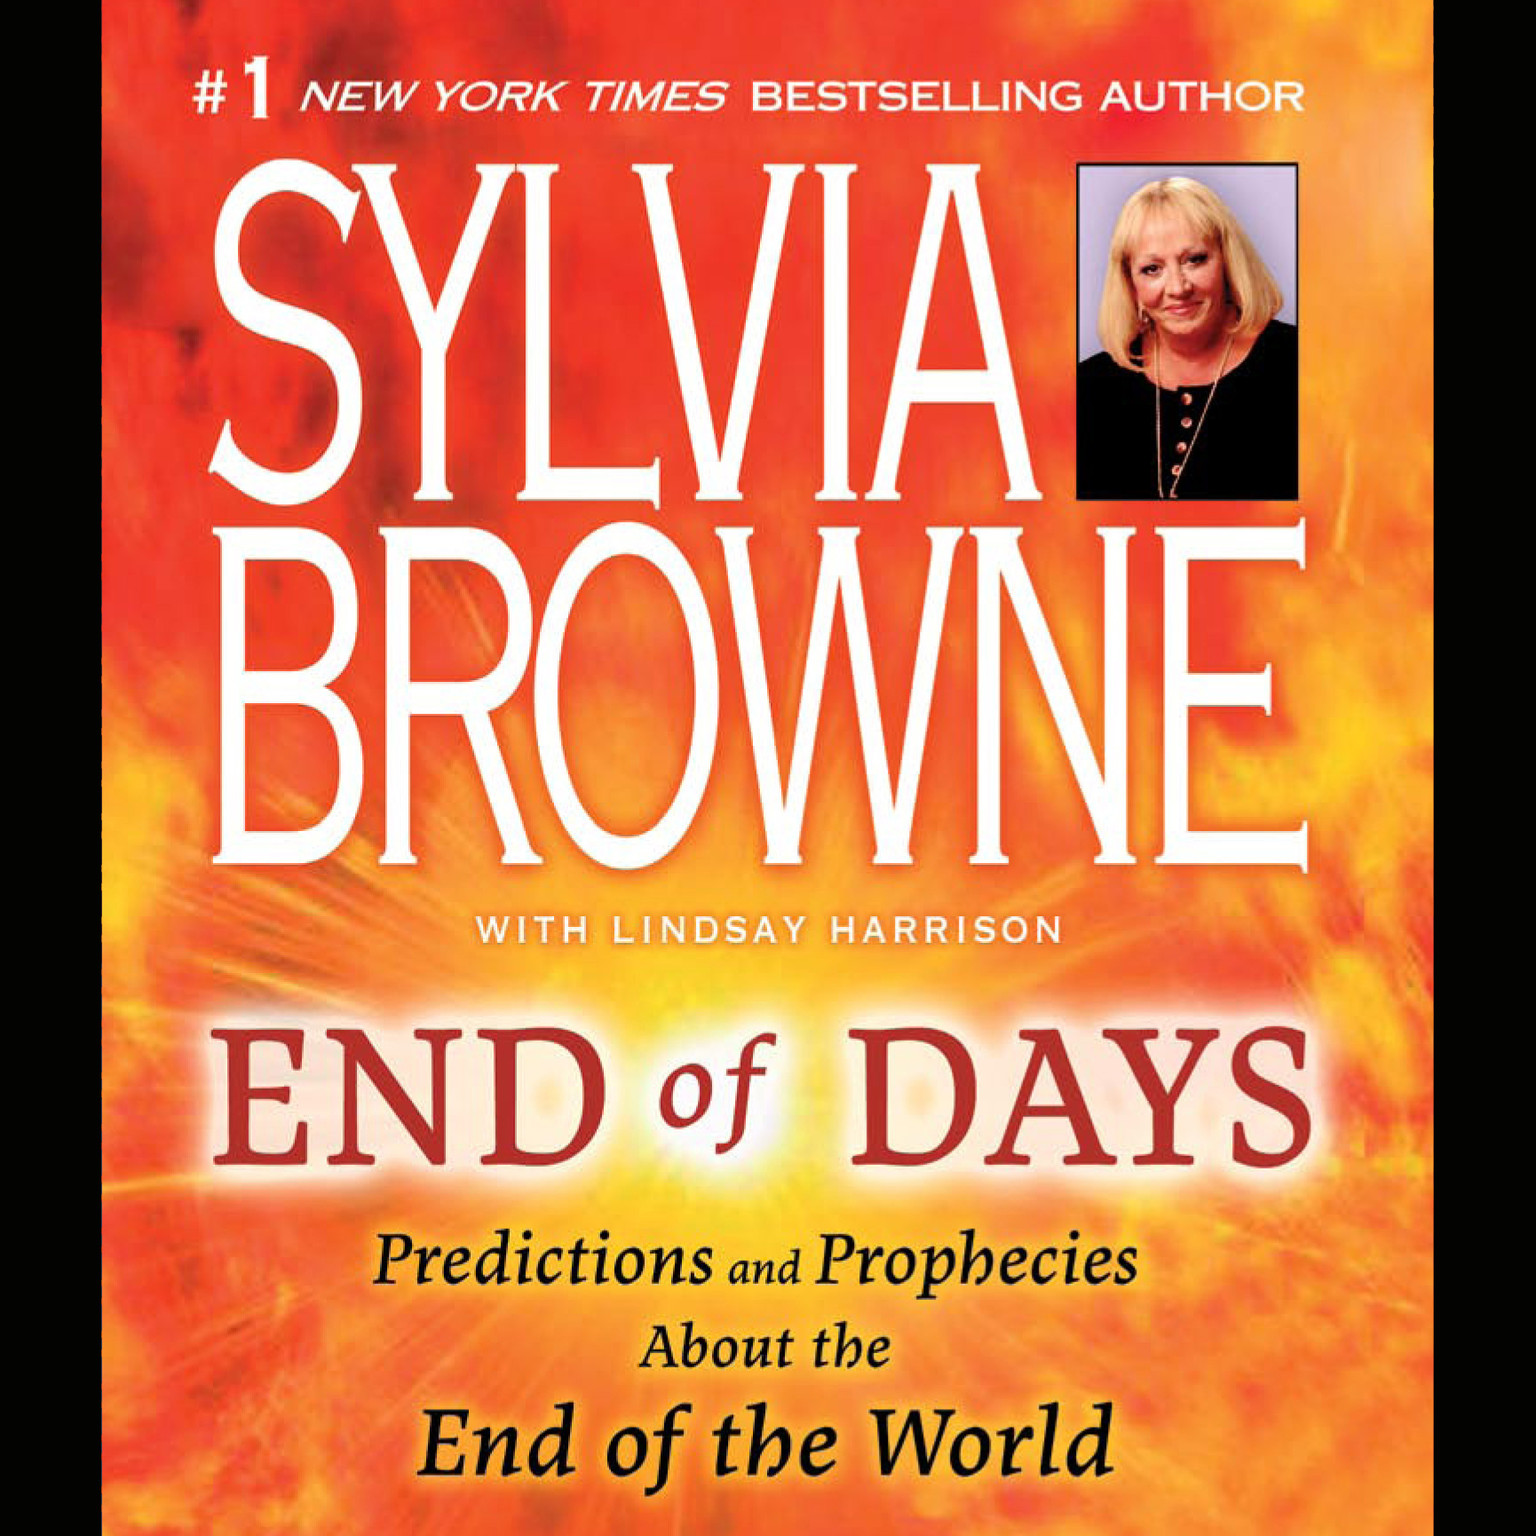 Printable End of Days: Predictions and Prophecies About the End of the World Audiobook Cover Art